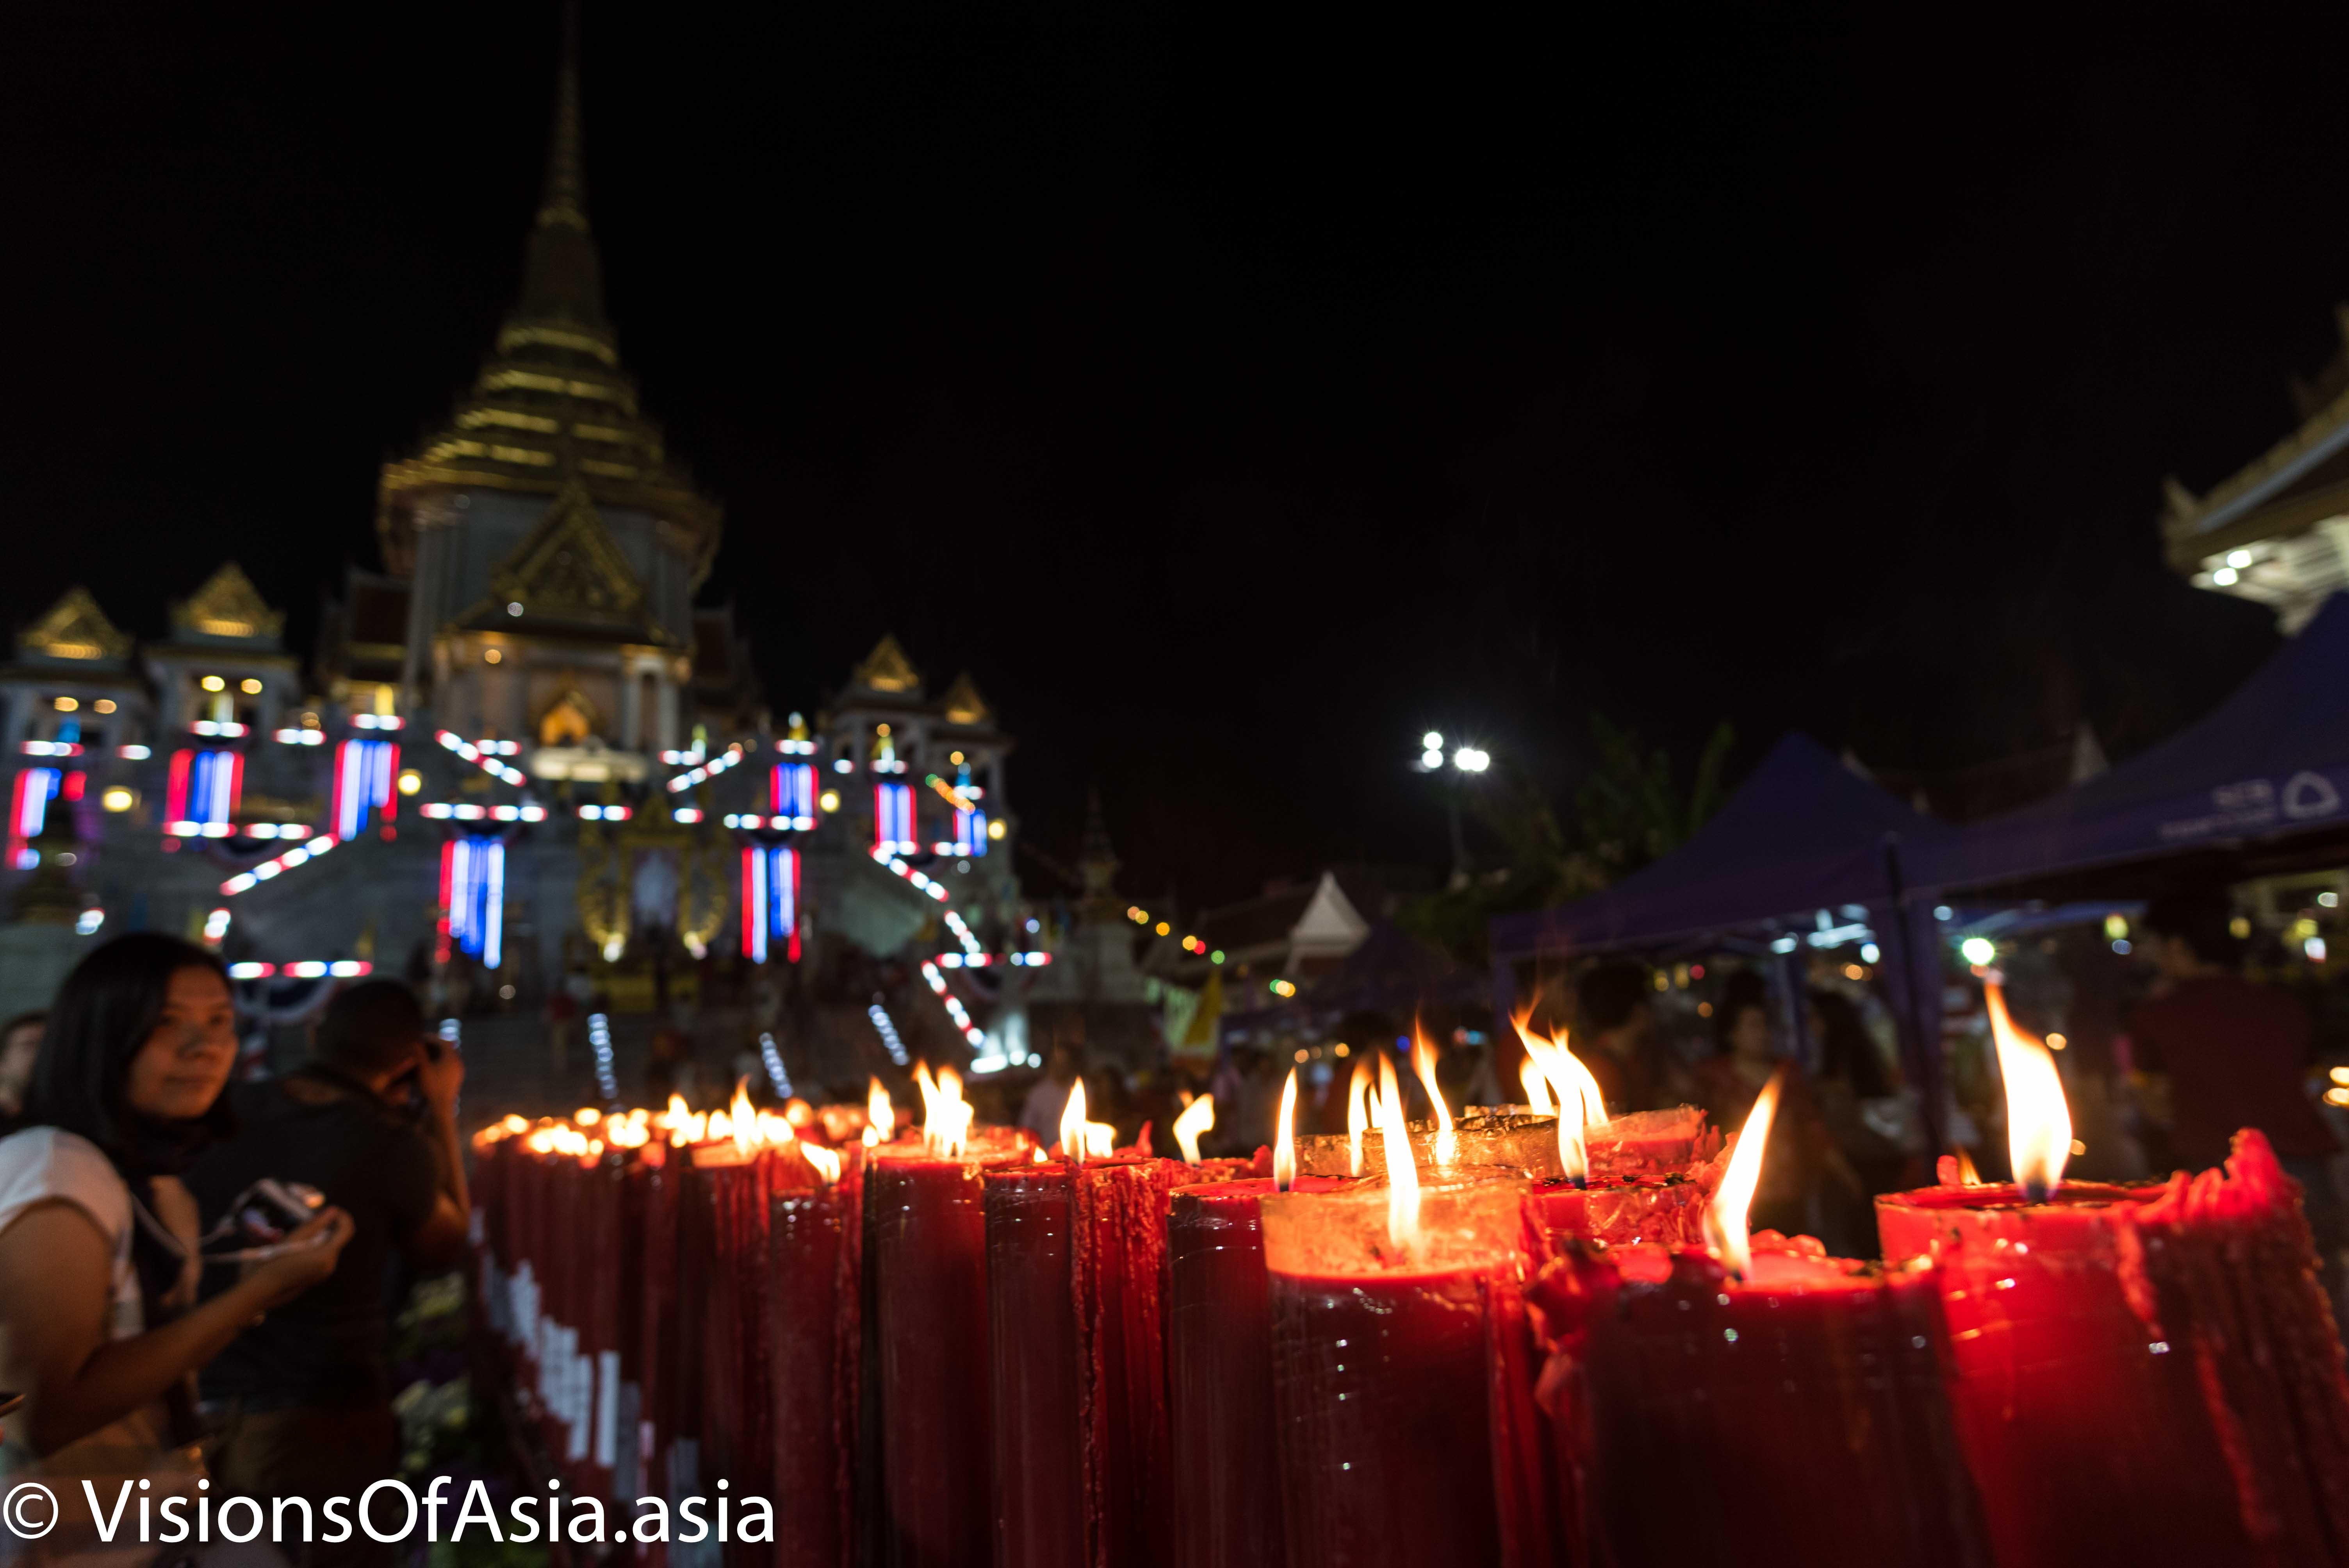 Candles of Wat Traimit